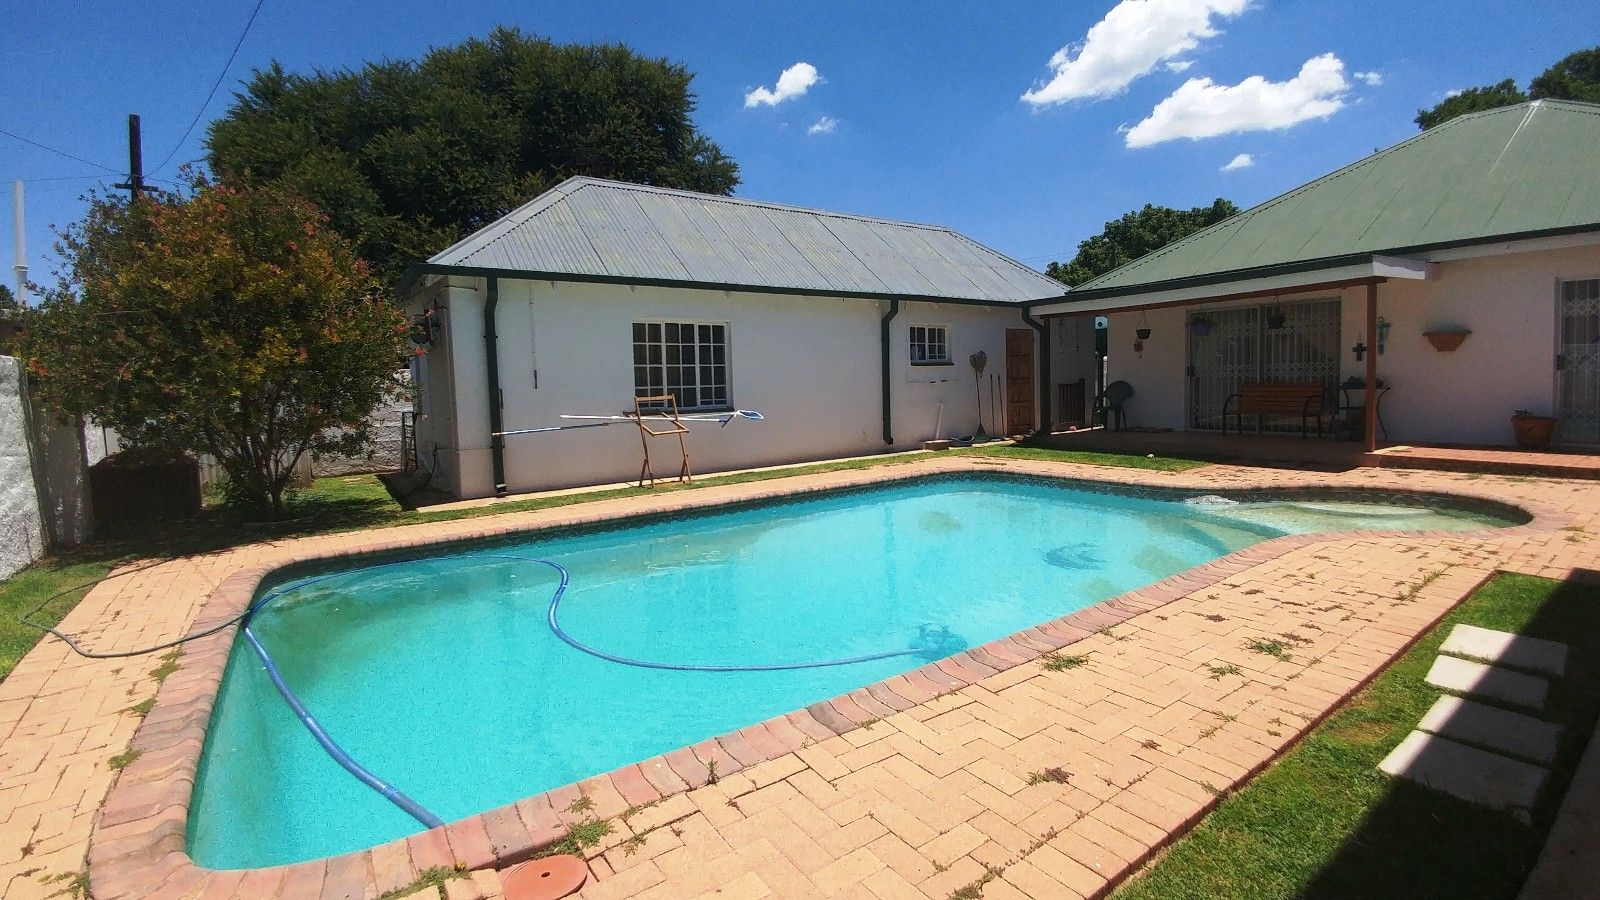 Potchefstroom Central for sale property. Ref No: 13460775. Picture no 3